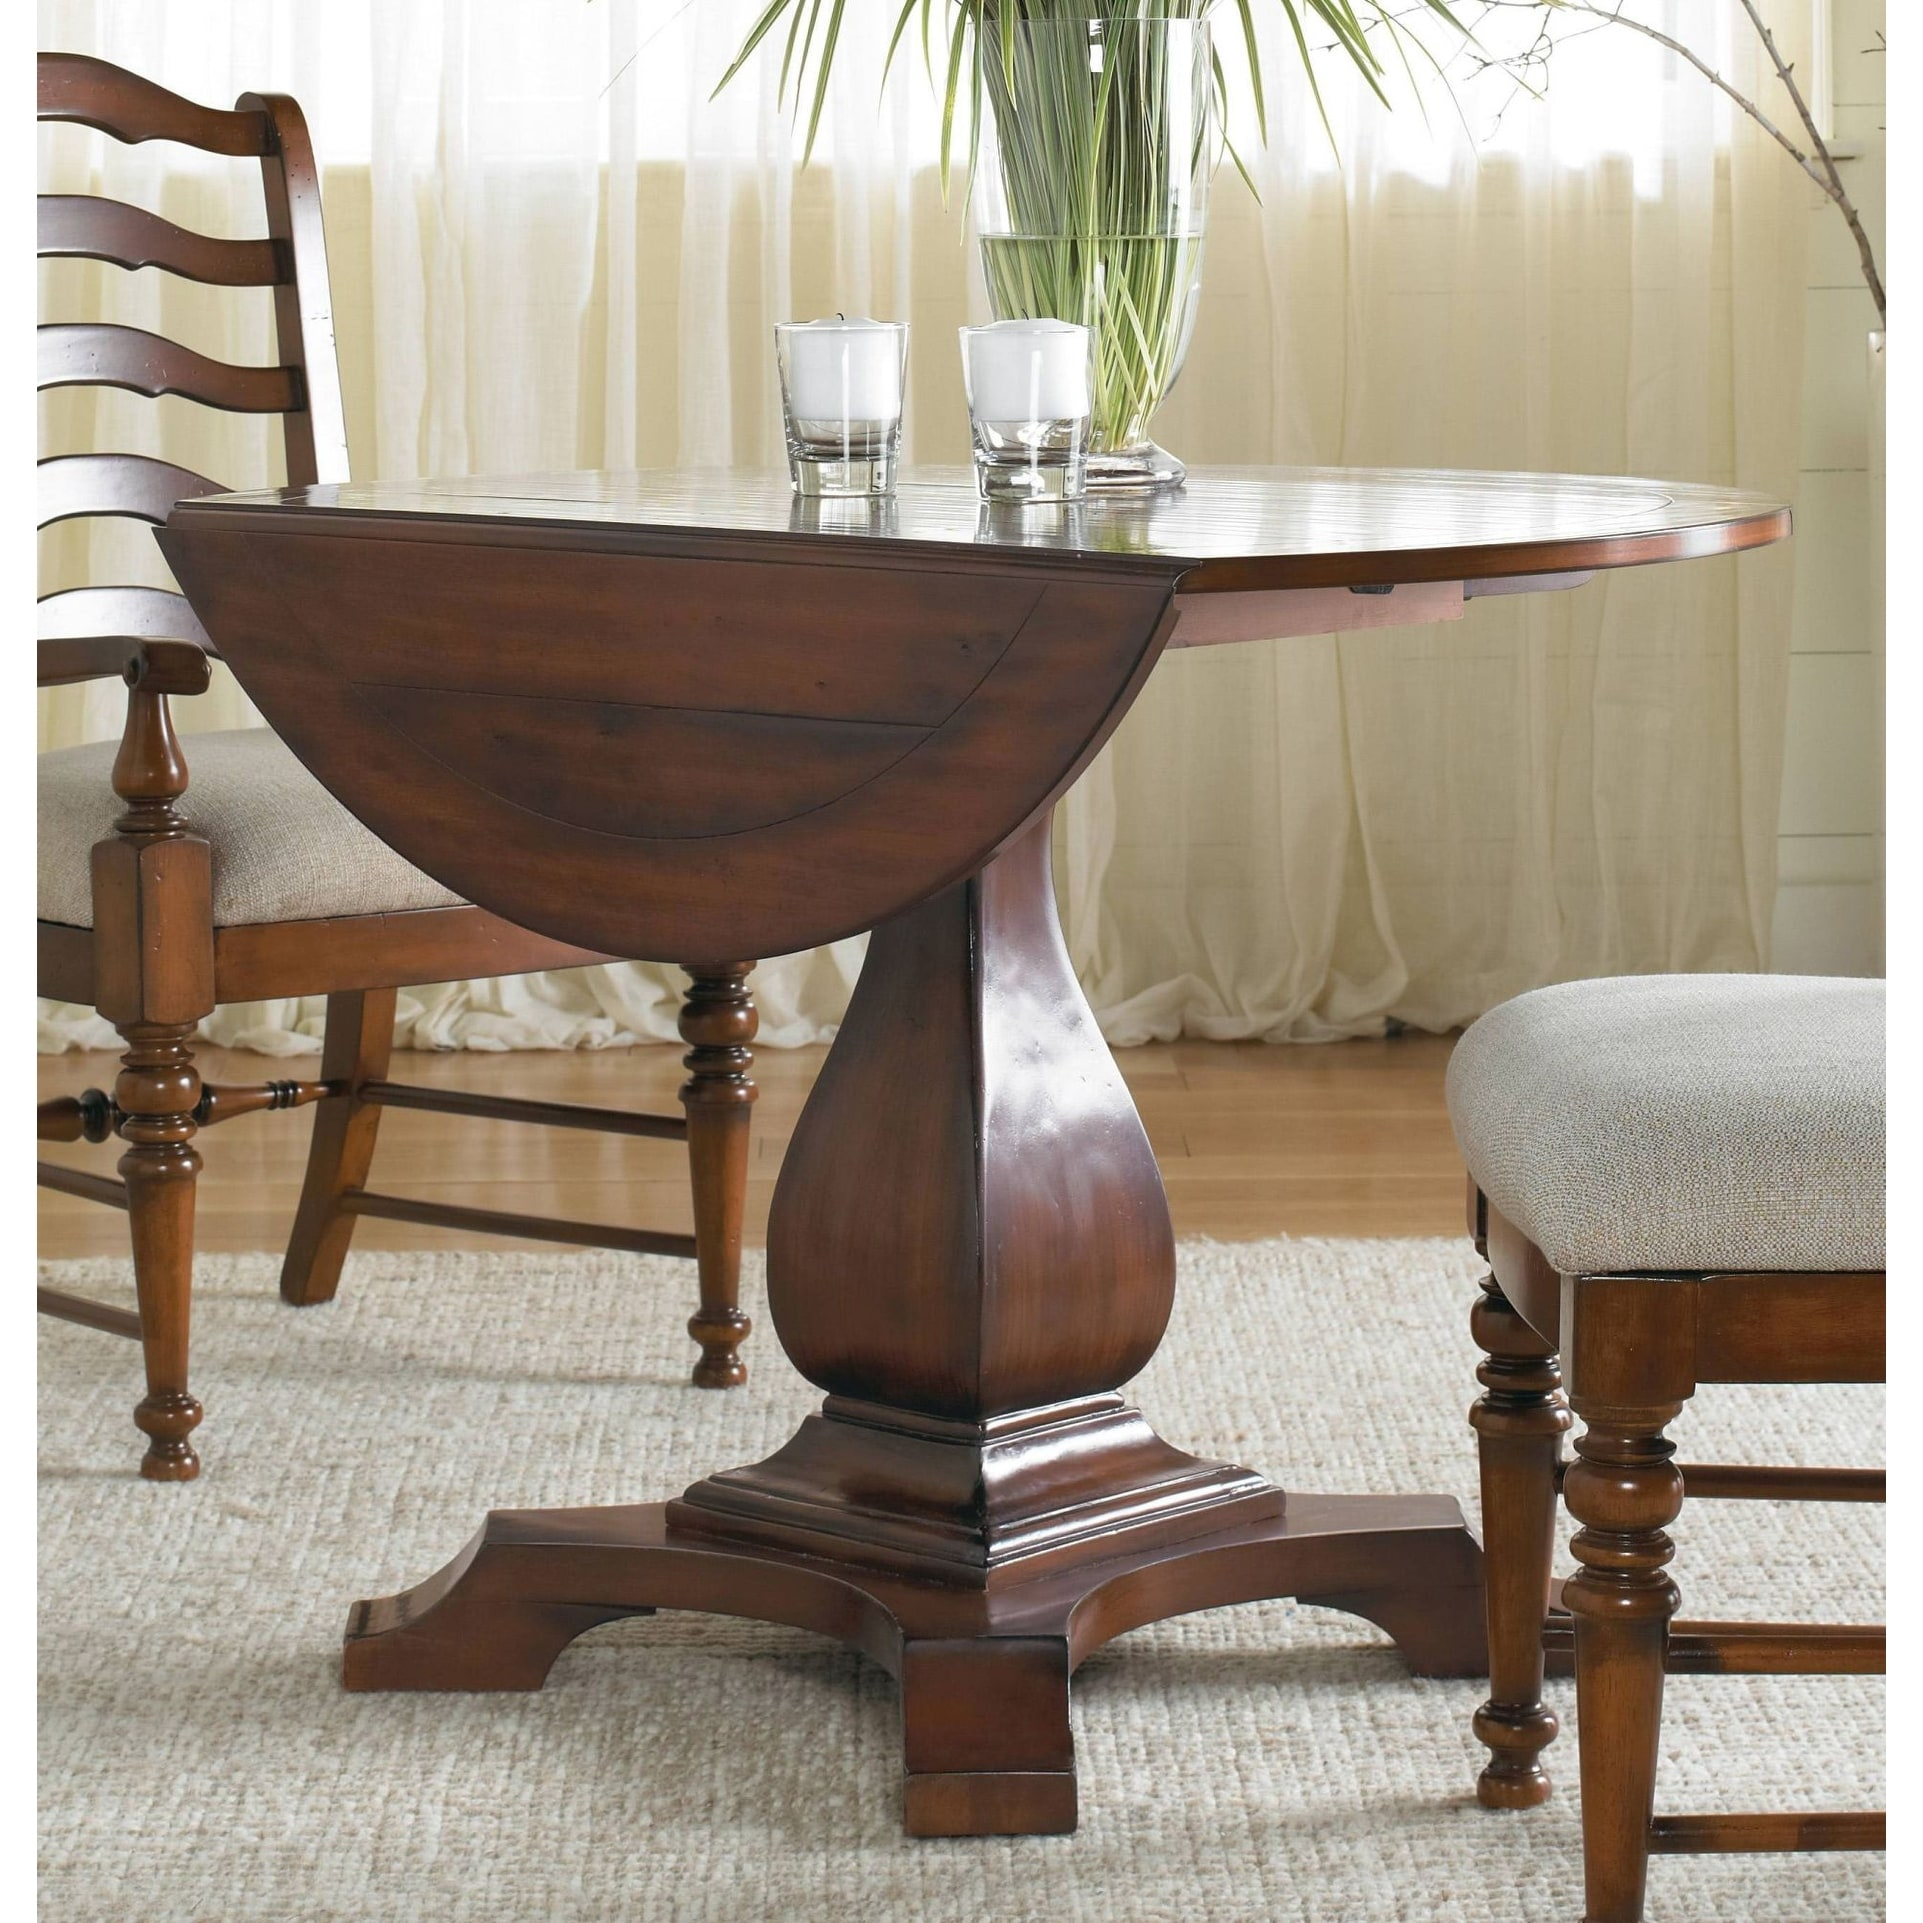 Round Timber Dining Table Hooker Furniture 366 75 218 42